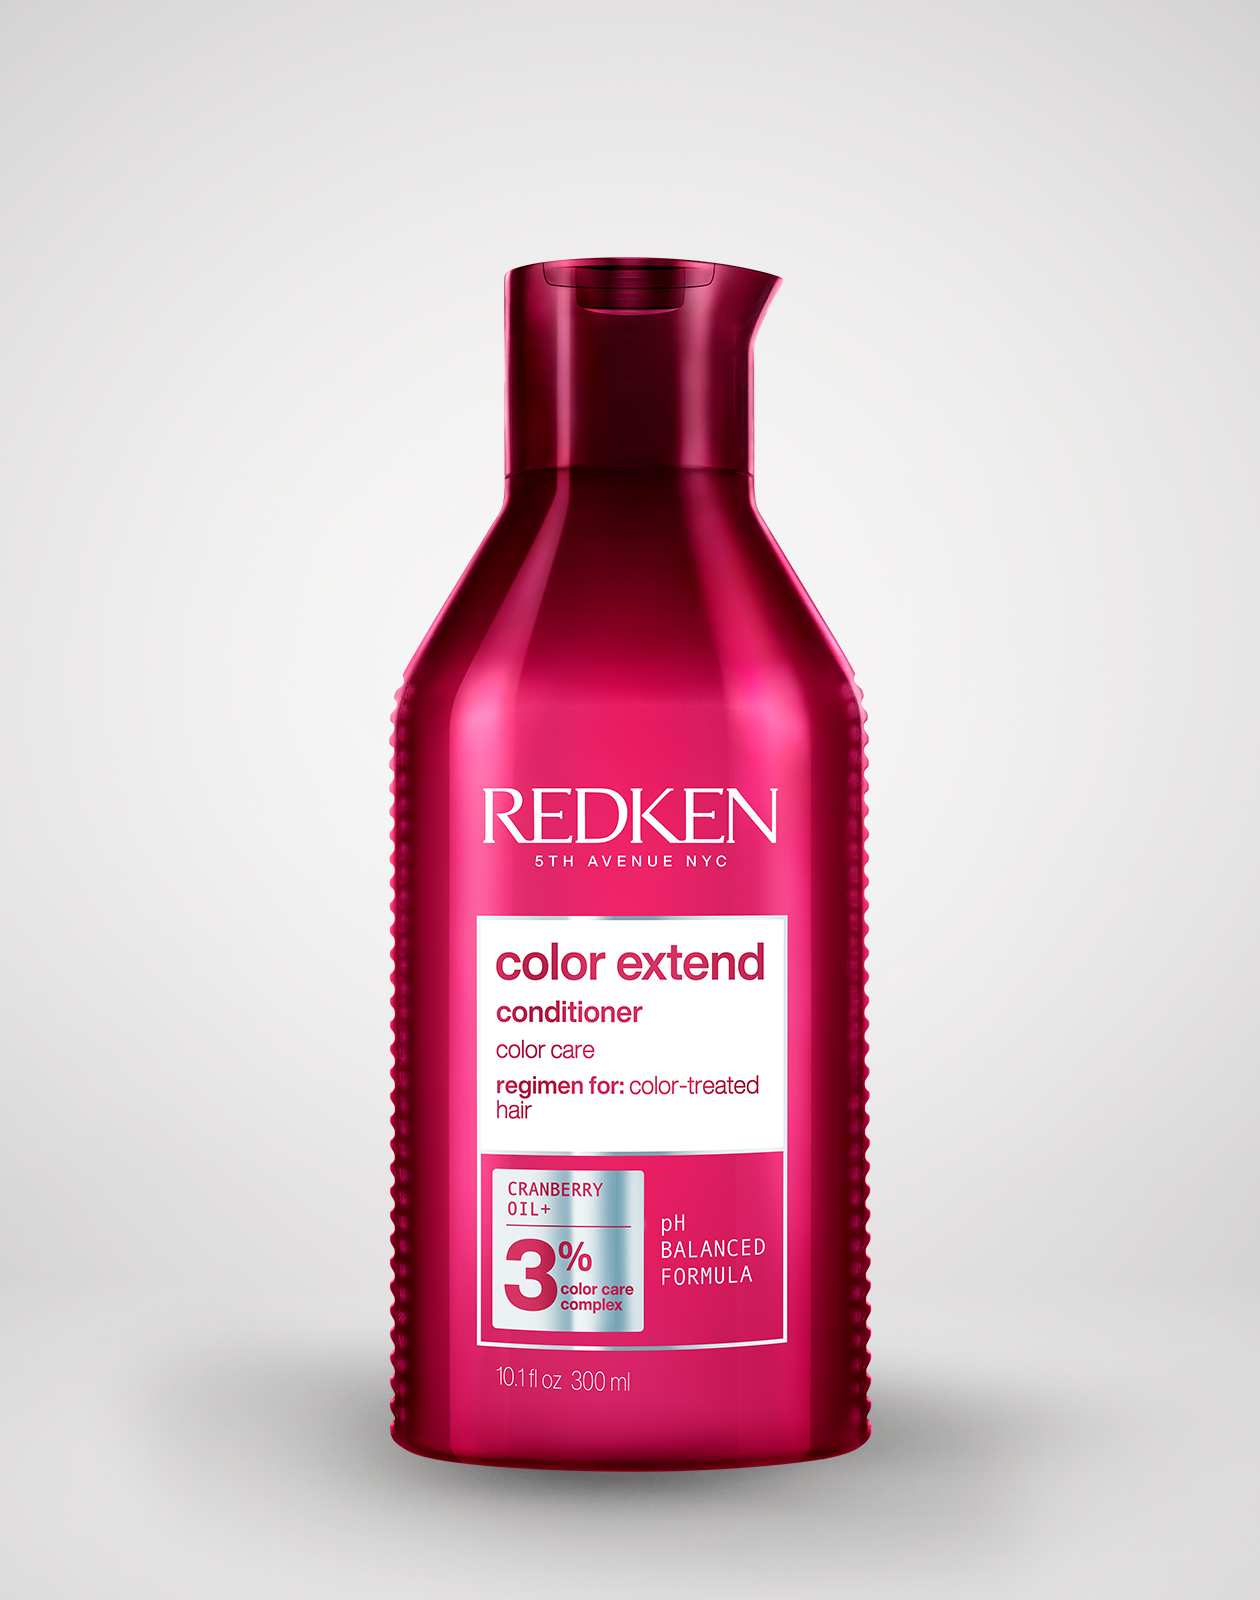 Shampoo For Color Treated Hair Redken Color Extend Shampoo